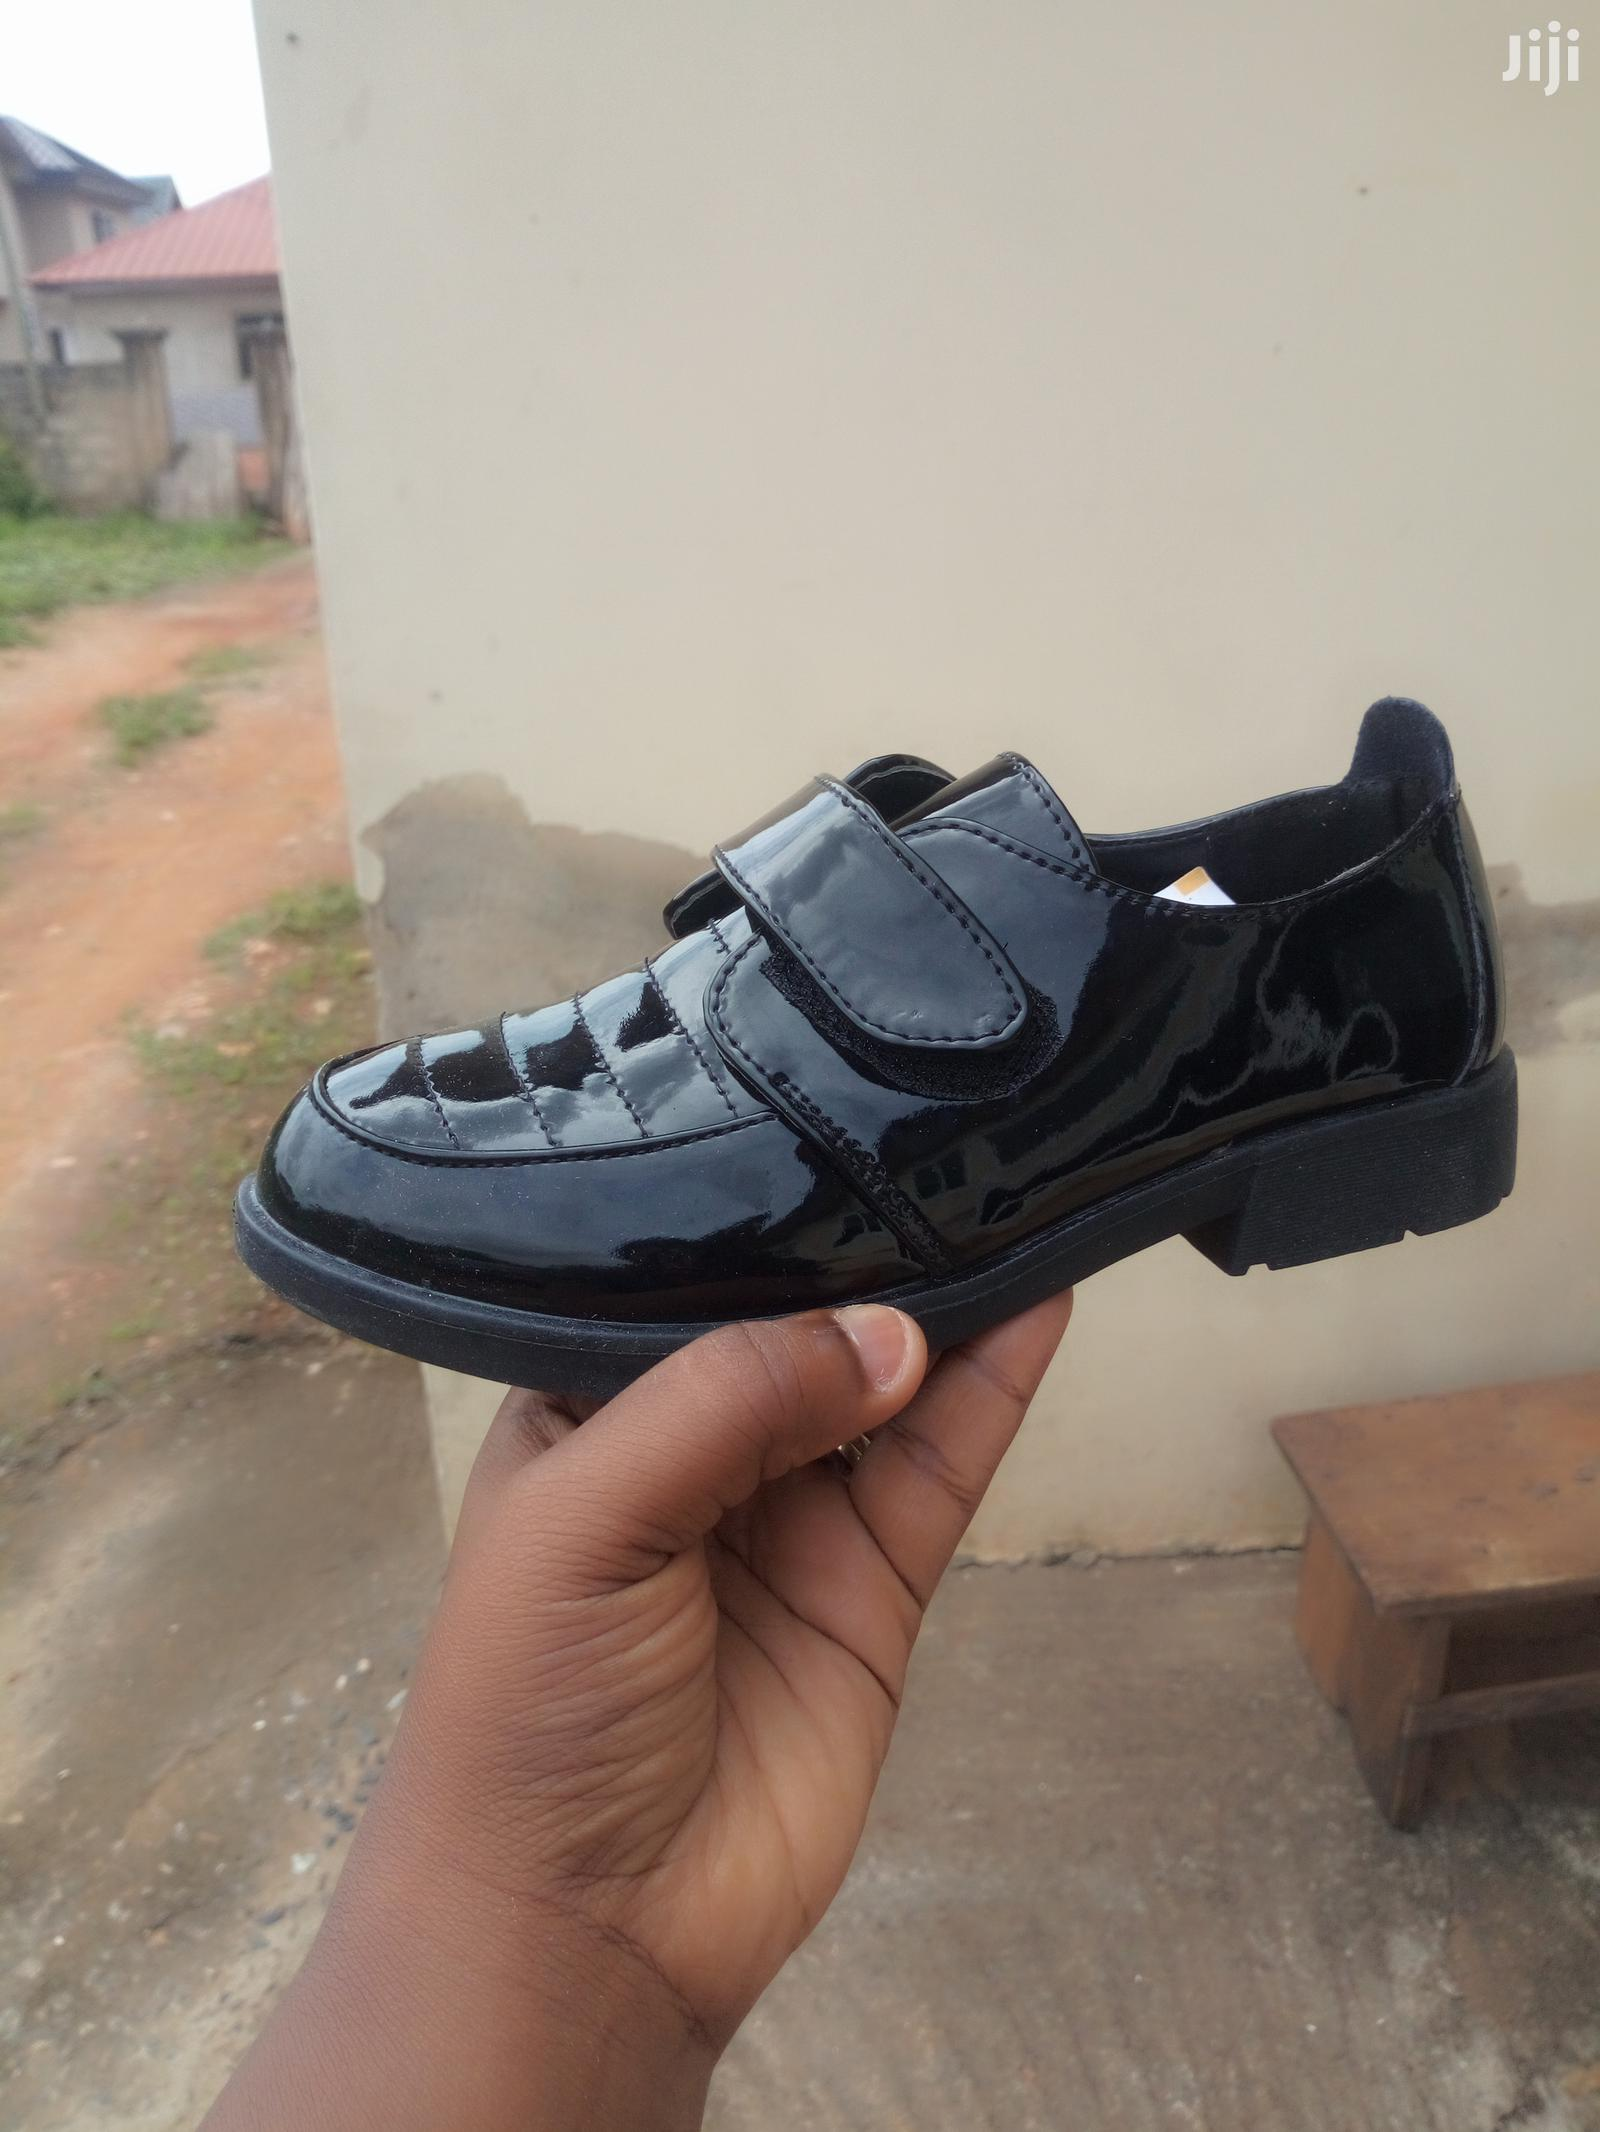 Children Quality Mirror Shoes | Children's Shoes for sale in Accra Metropolitan, Greater Accra, Ghana